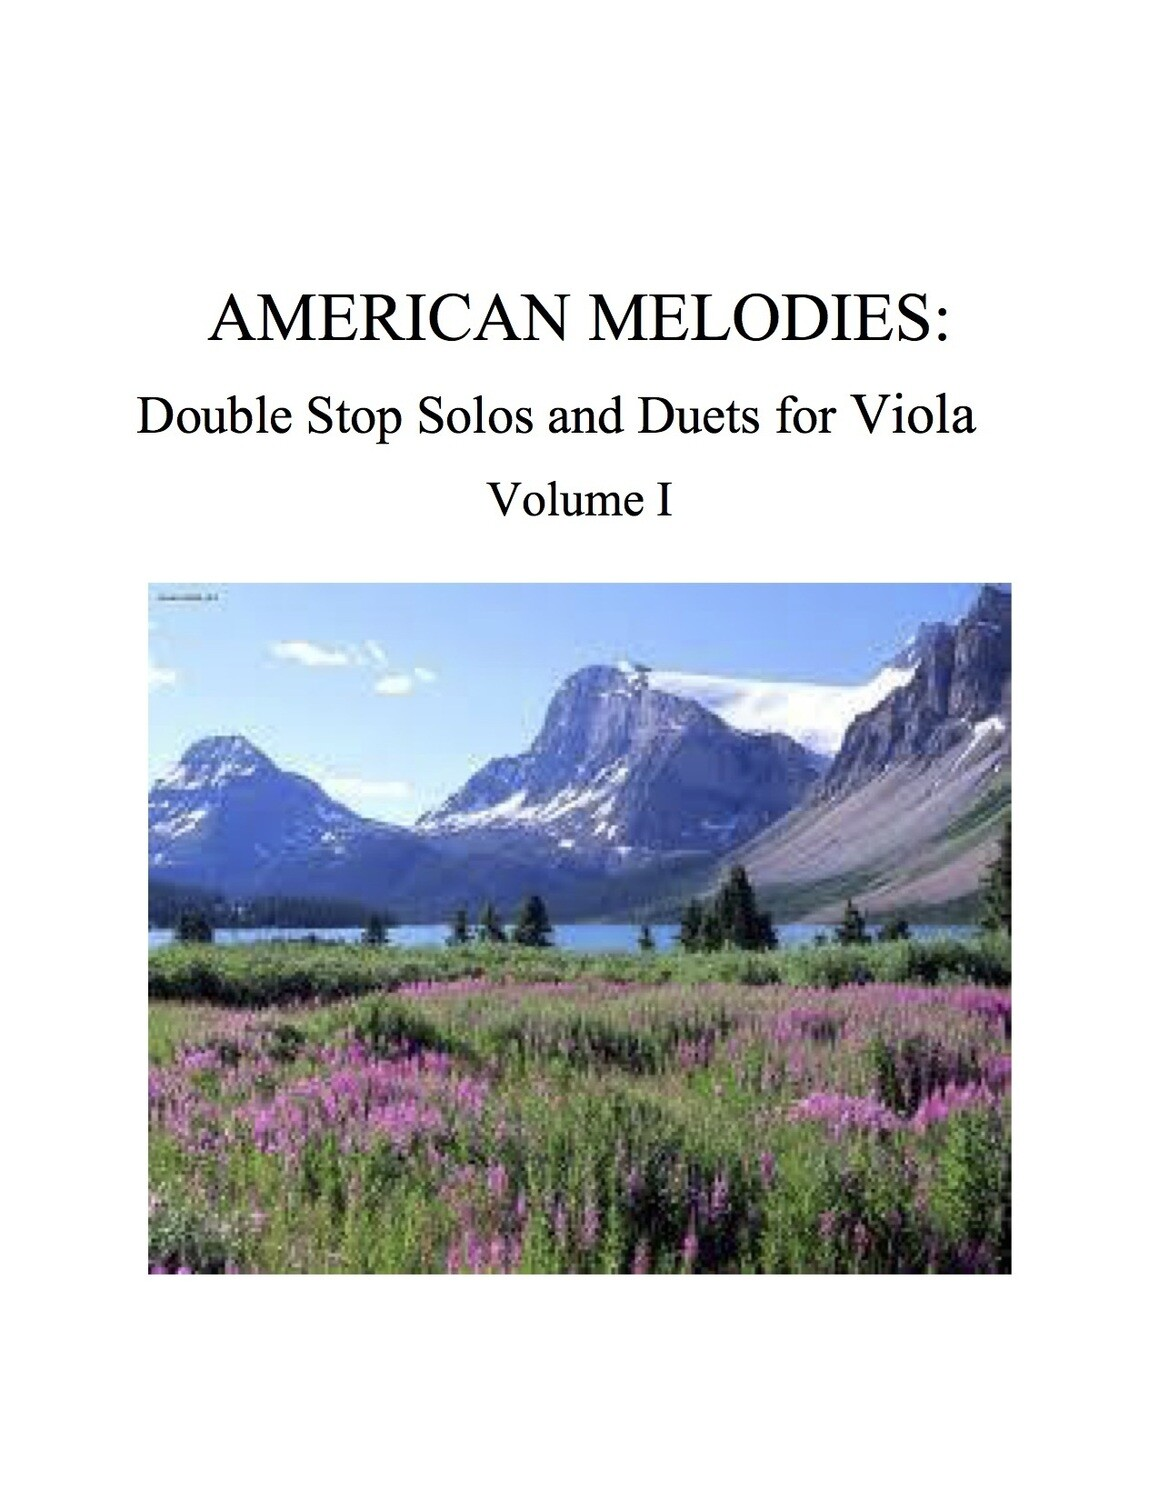 029 - American Melodies For Viola, Double Stop Solos and Duets, Volume I